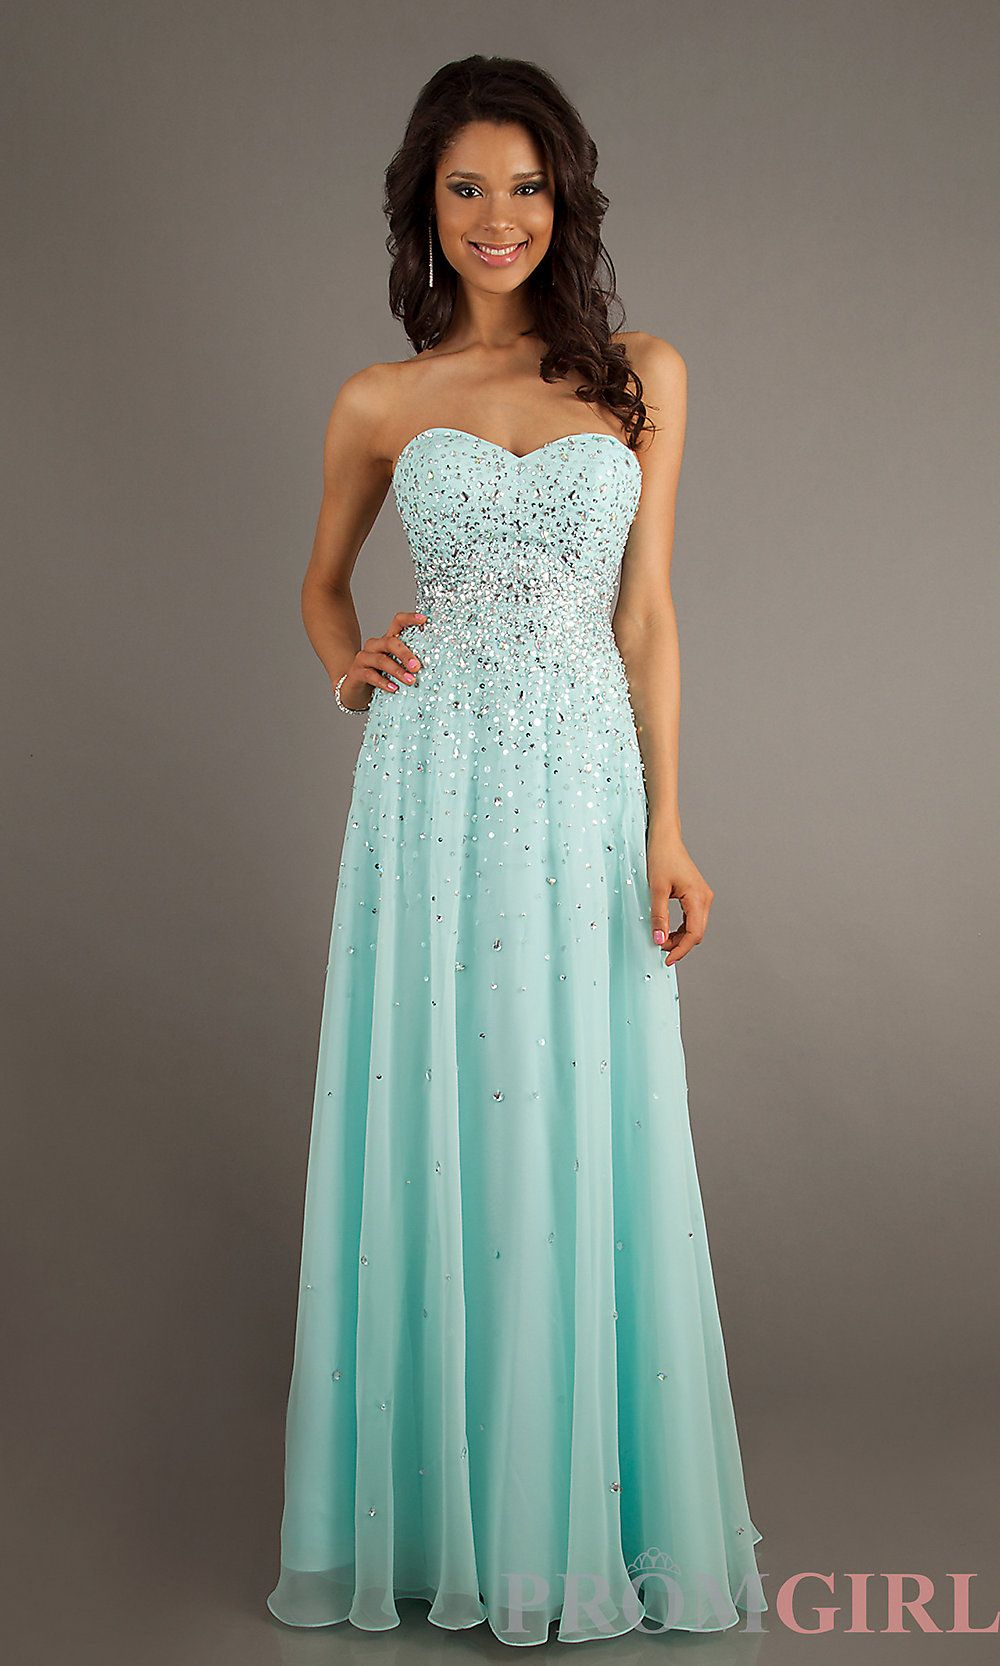 TBdress Prom Dresses Archives | Mori lee, Strapless dress and Gowns